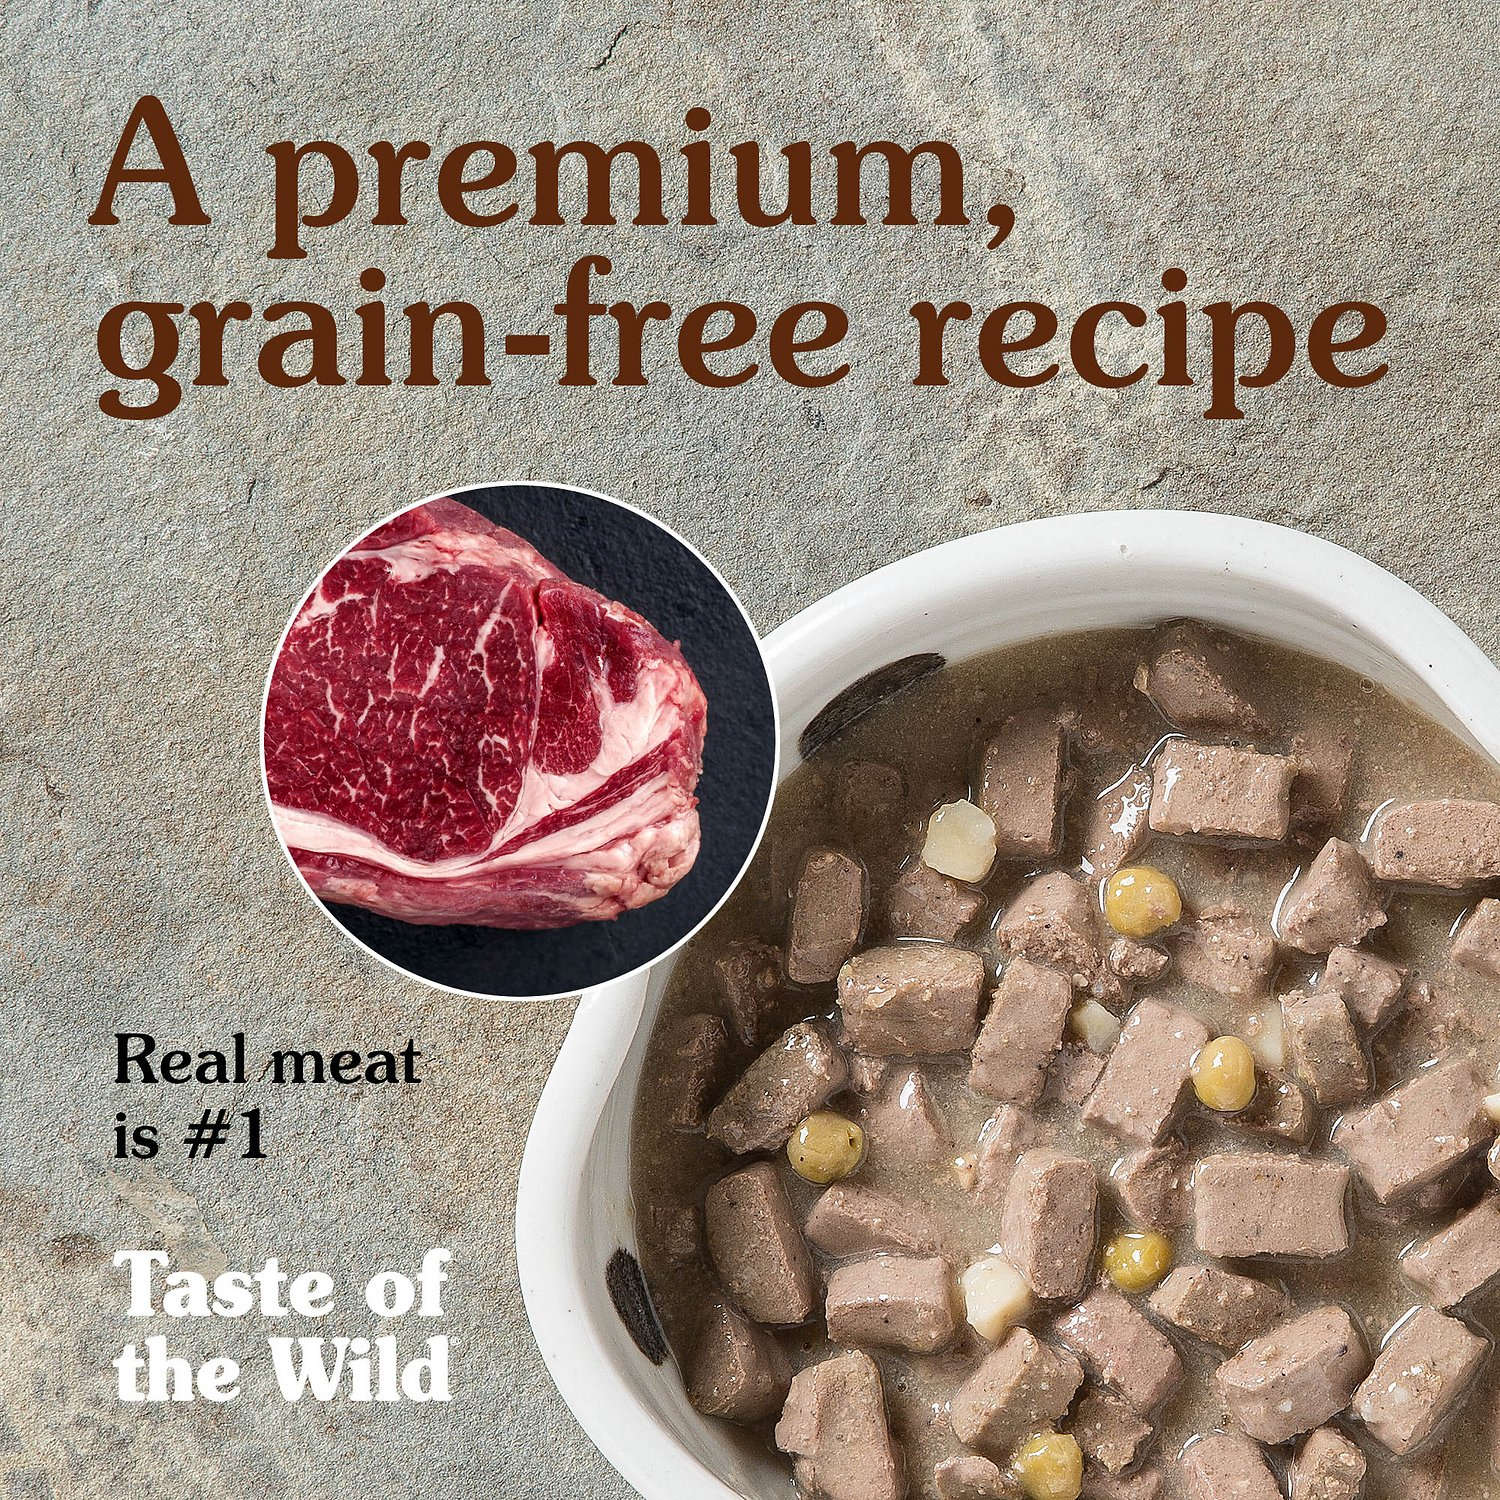 Taste Of The Wild Grain Free Canned Dog